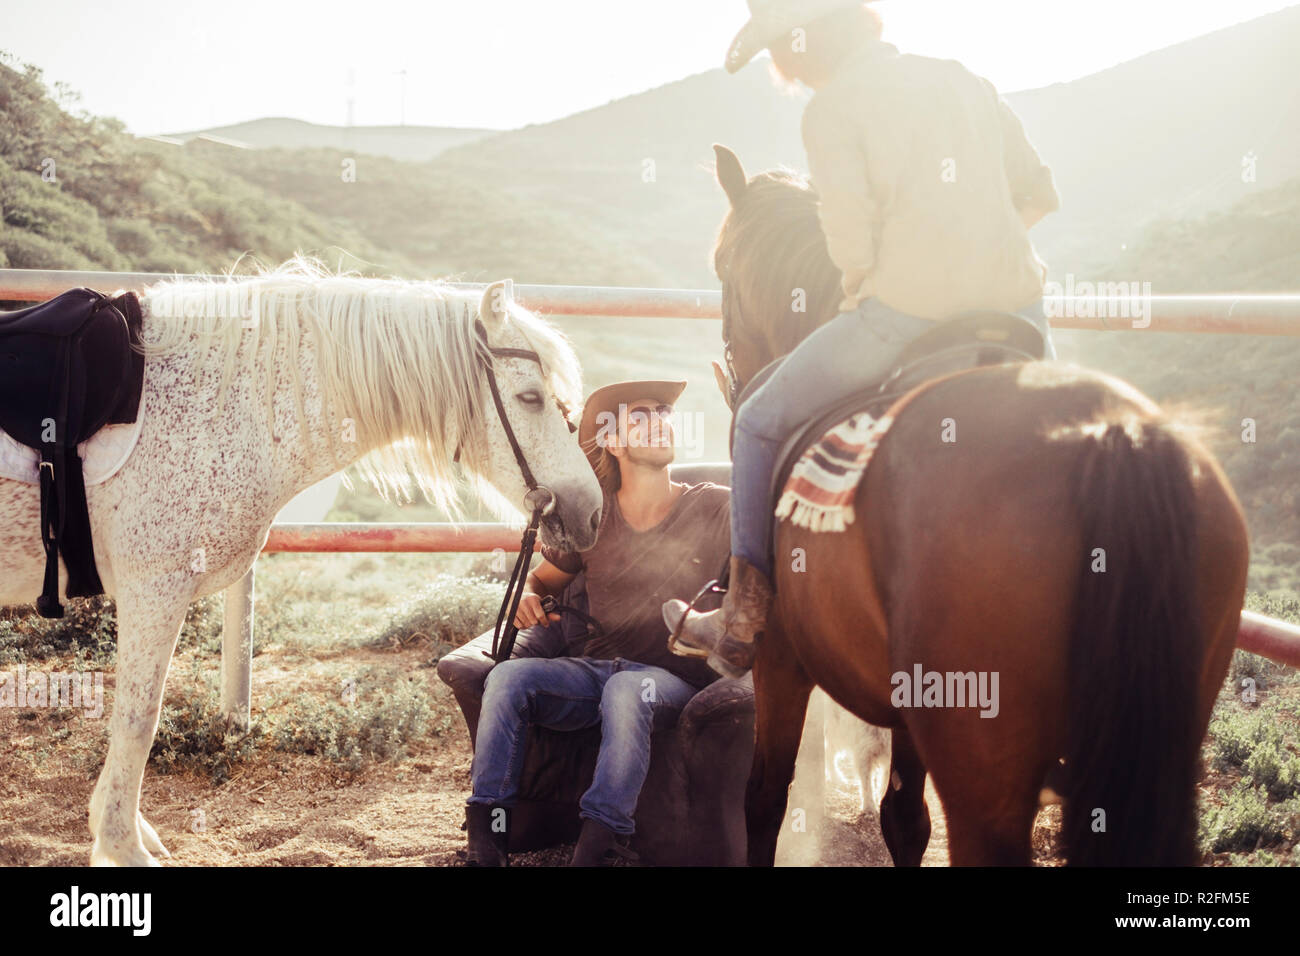 Countryside And Horse Farm Daily Scene With Sun And Backlight Two Horses And Two Rider Man And Woman Smile For A Beautiful Day In The Nature Friendship And Animal Therapy With Cowboy